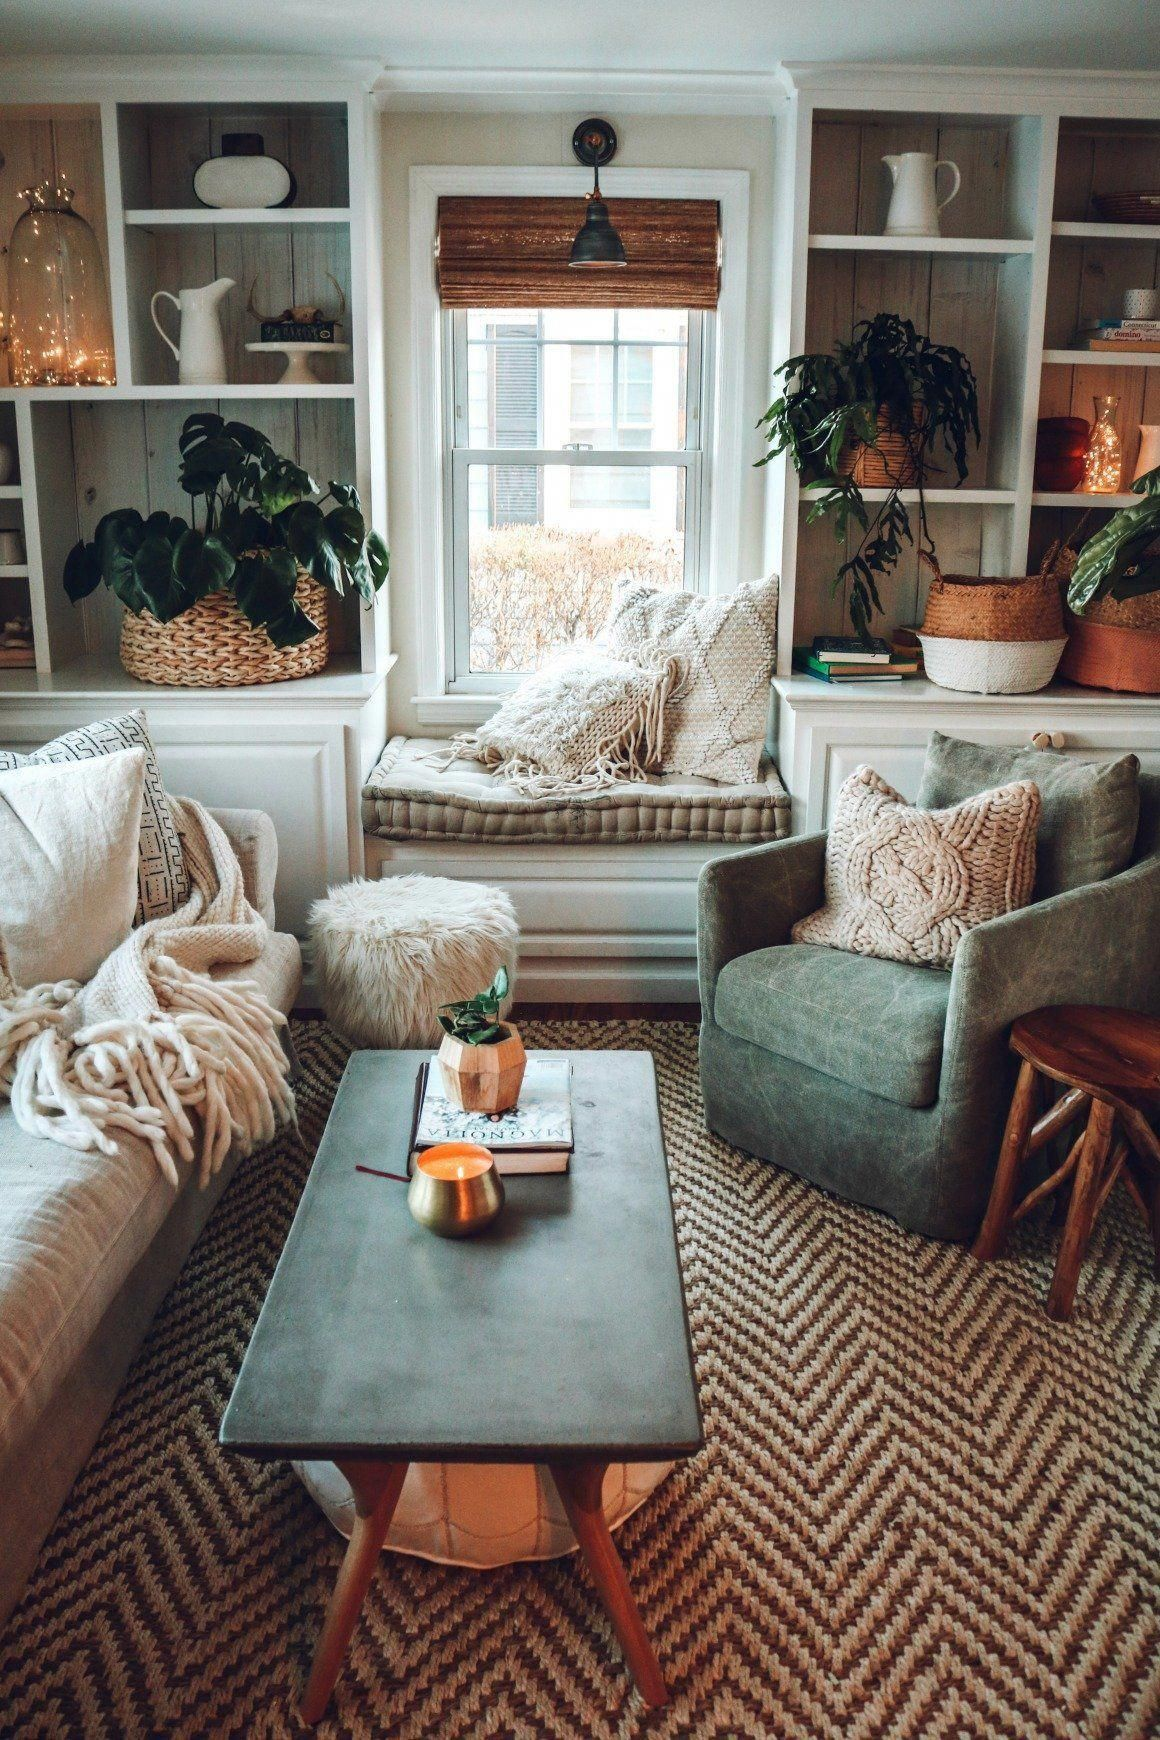 40+ Living room decorations cheap ideas